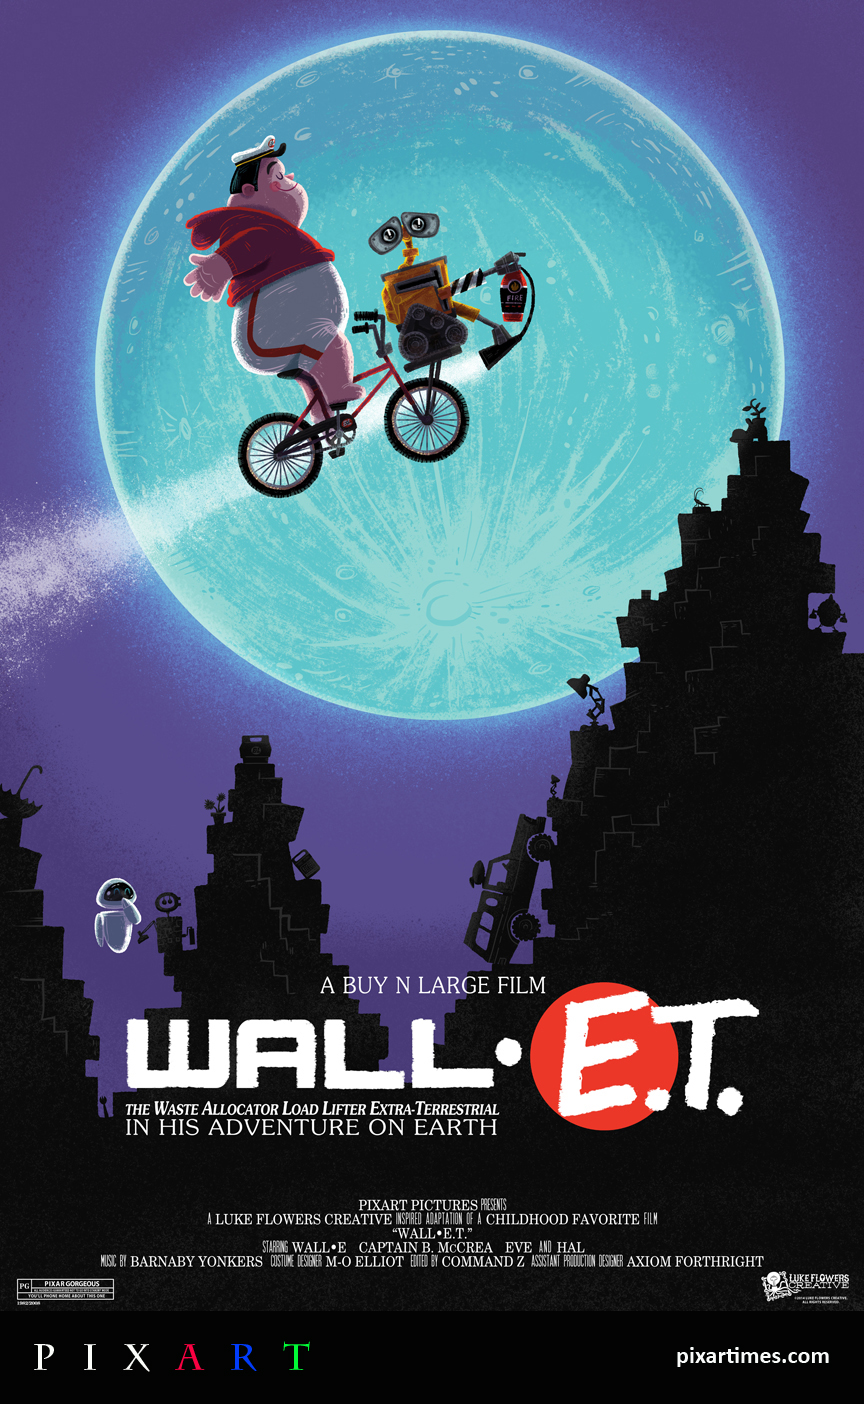 PixArt: March Feature – Pixar Movie Poster Mash-Up